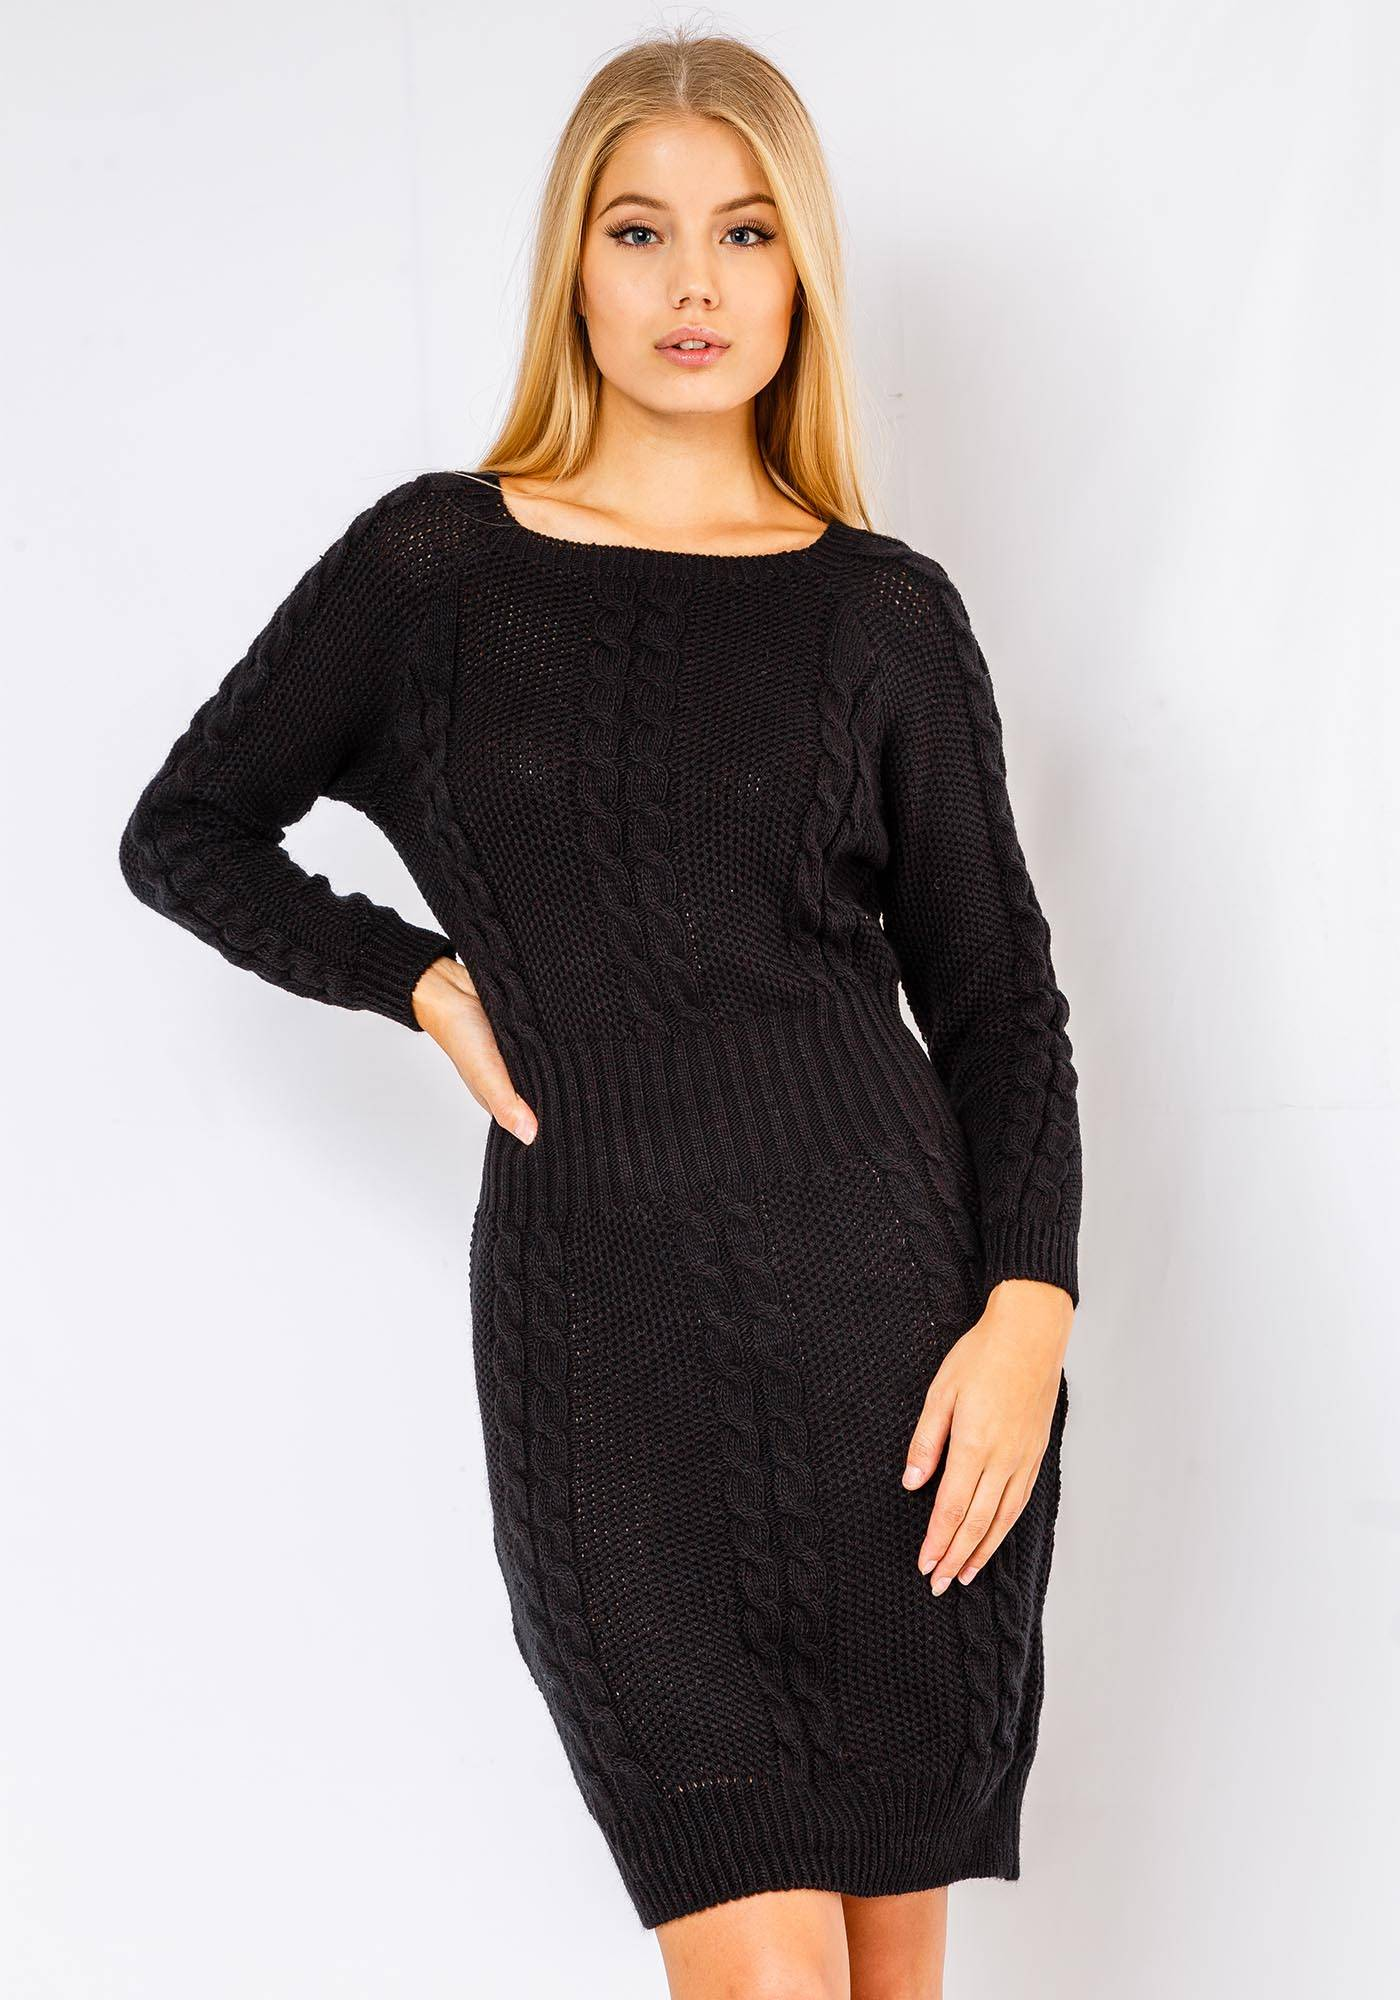 Image of Fiorellashop Alena Long Sleeve Cable Knitted Dress In Black